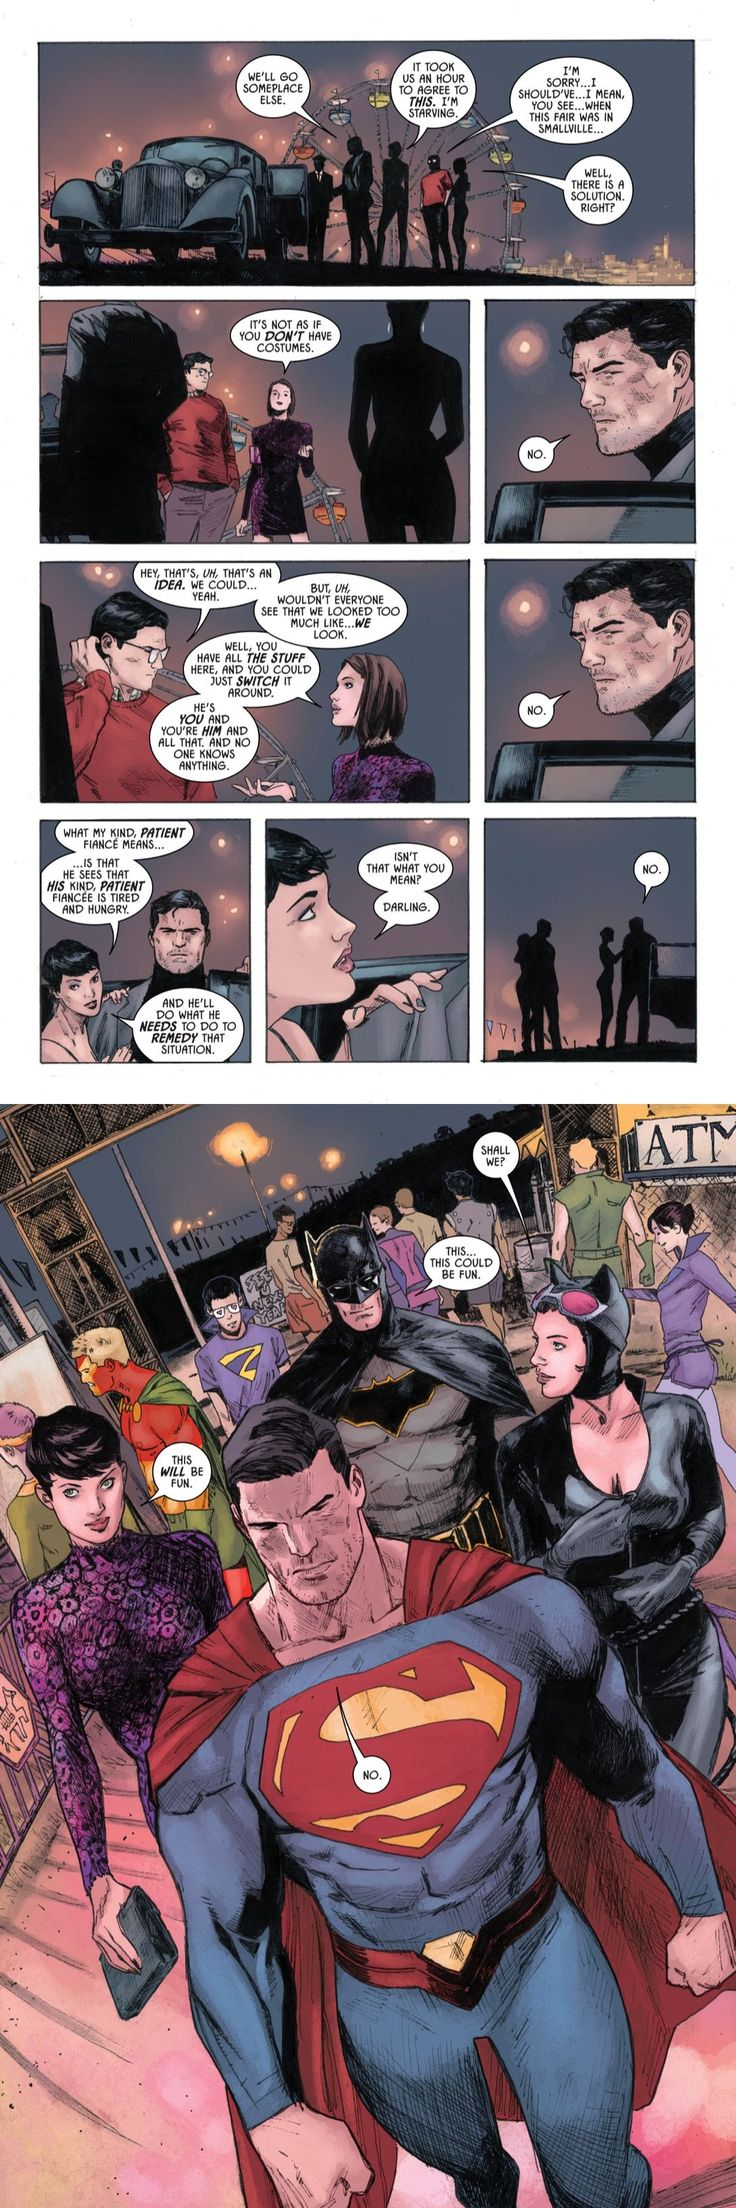 Batman (2016-) #37 - 'Date Night' | I didn't know I needed Batman and Superman swapping costumes until it happened #batman #catwoman #superman #loislane #dccomics #batcat #superbat #superfriends #datenight